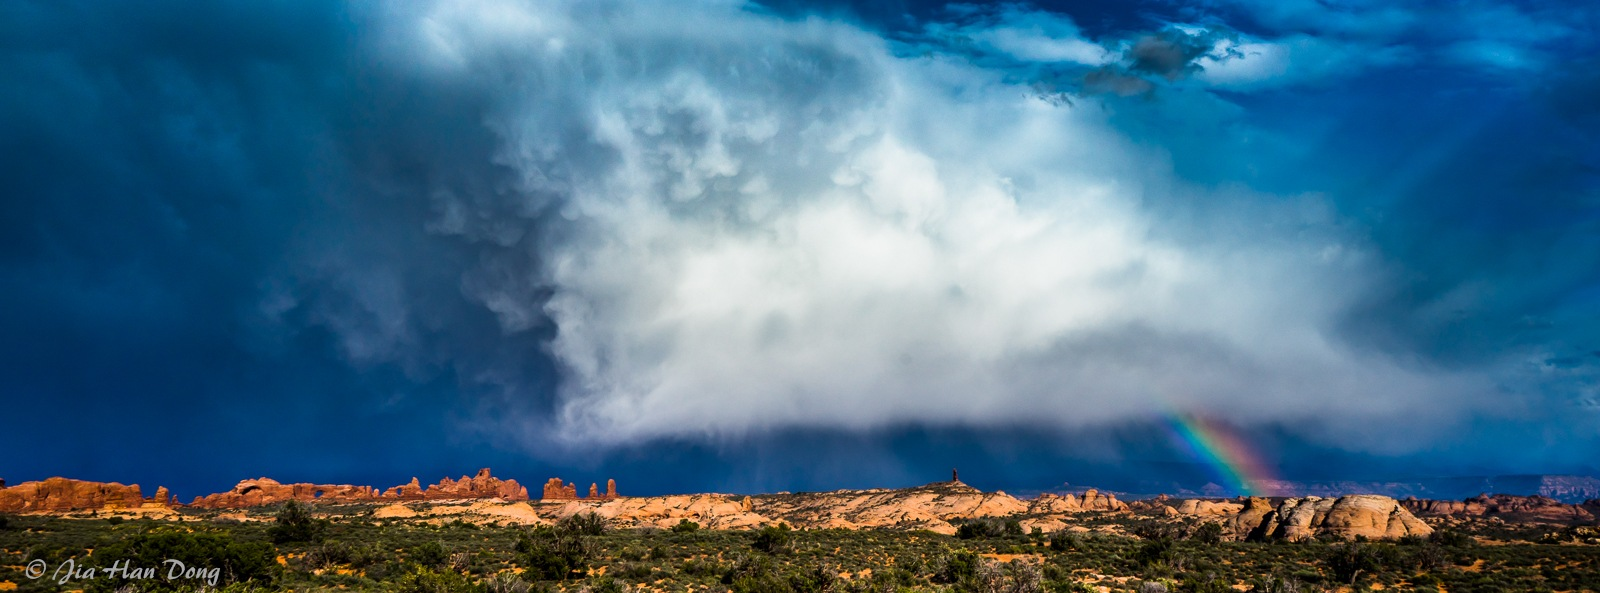 Rainbow, stormy clouds, Arch National Park by Jiahan Dong